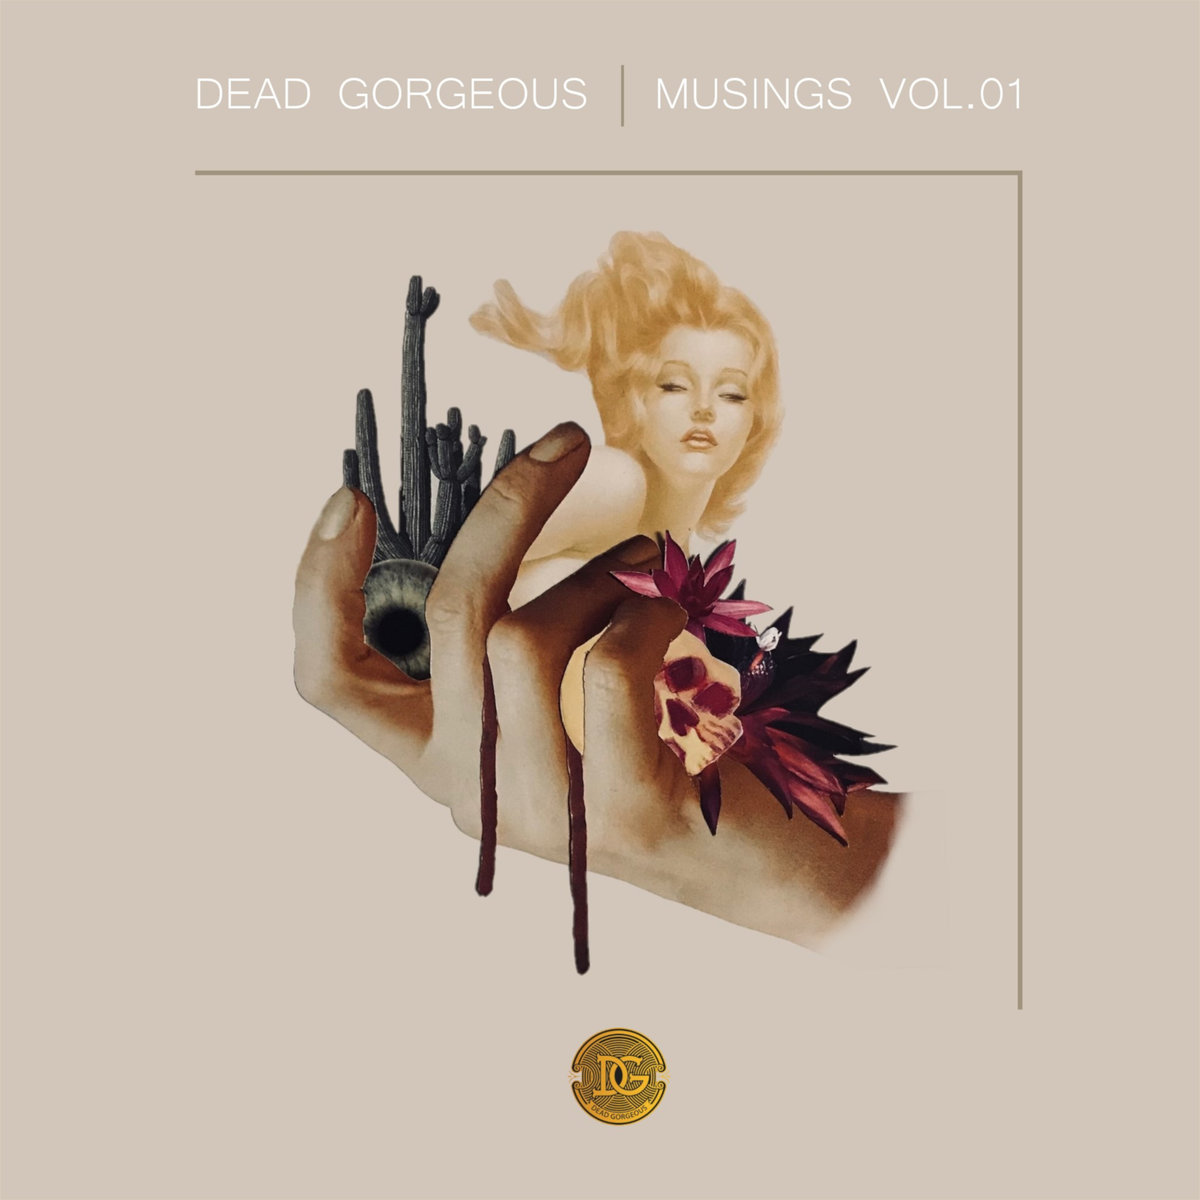 Dead_gorgeous_records_presenta__musings_vol._01_